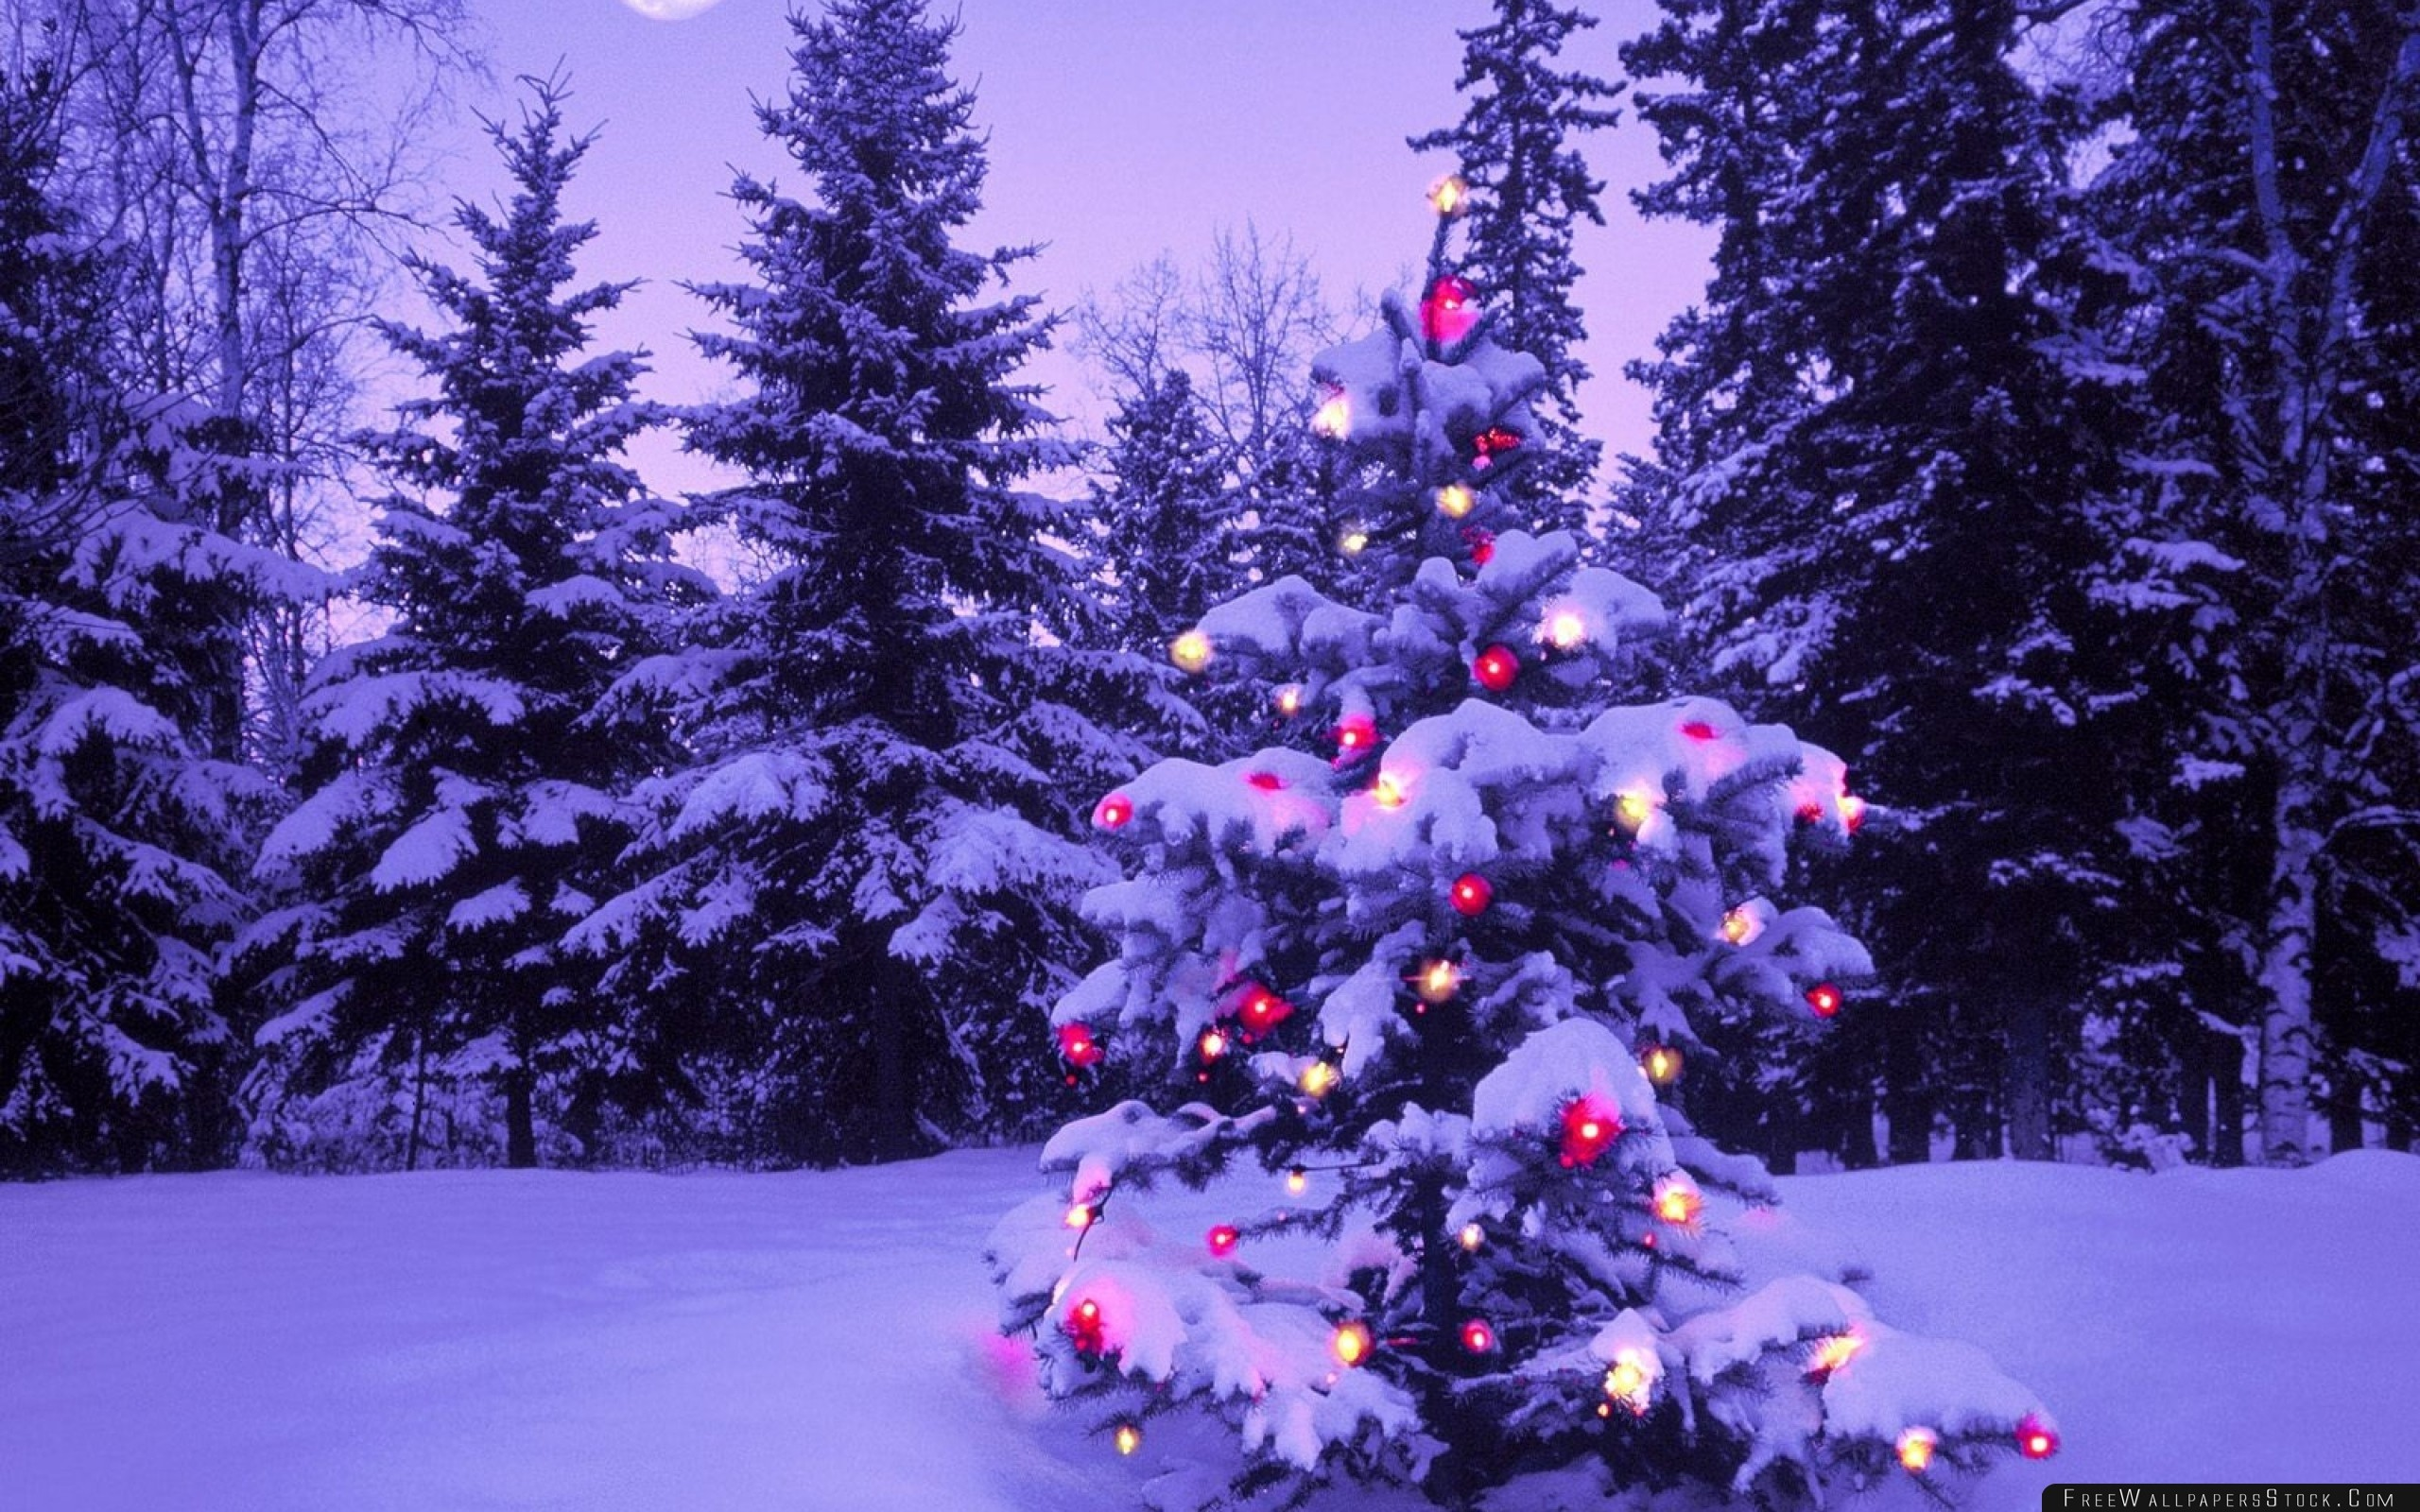 Download Free Wallpaper Wood New Year Christmas Fur Tree Fires Garland Snow Winter Sky Moon Evening